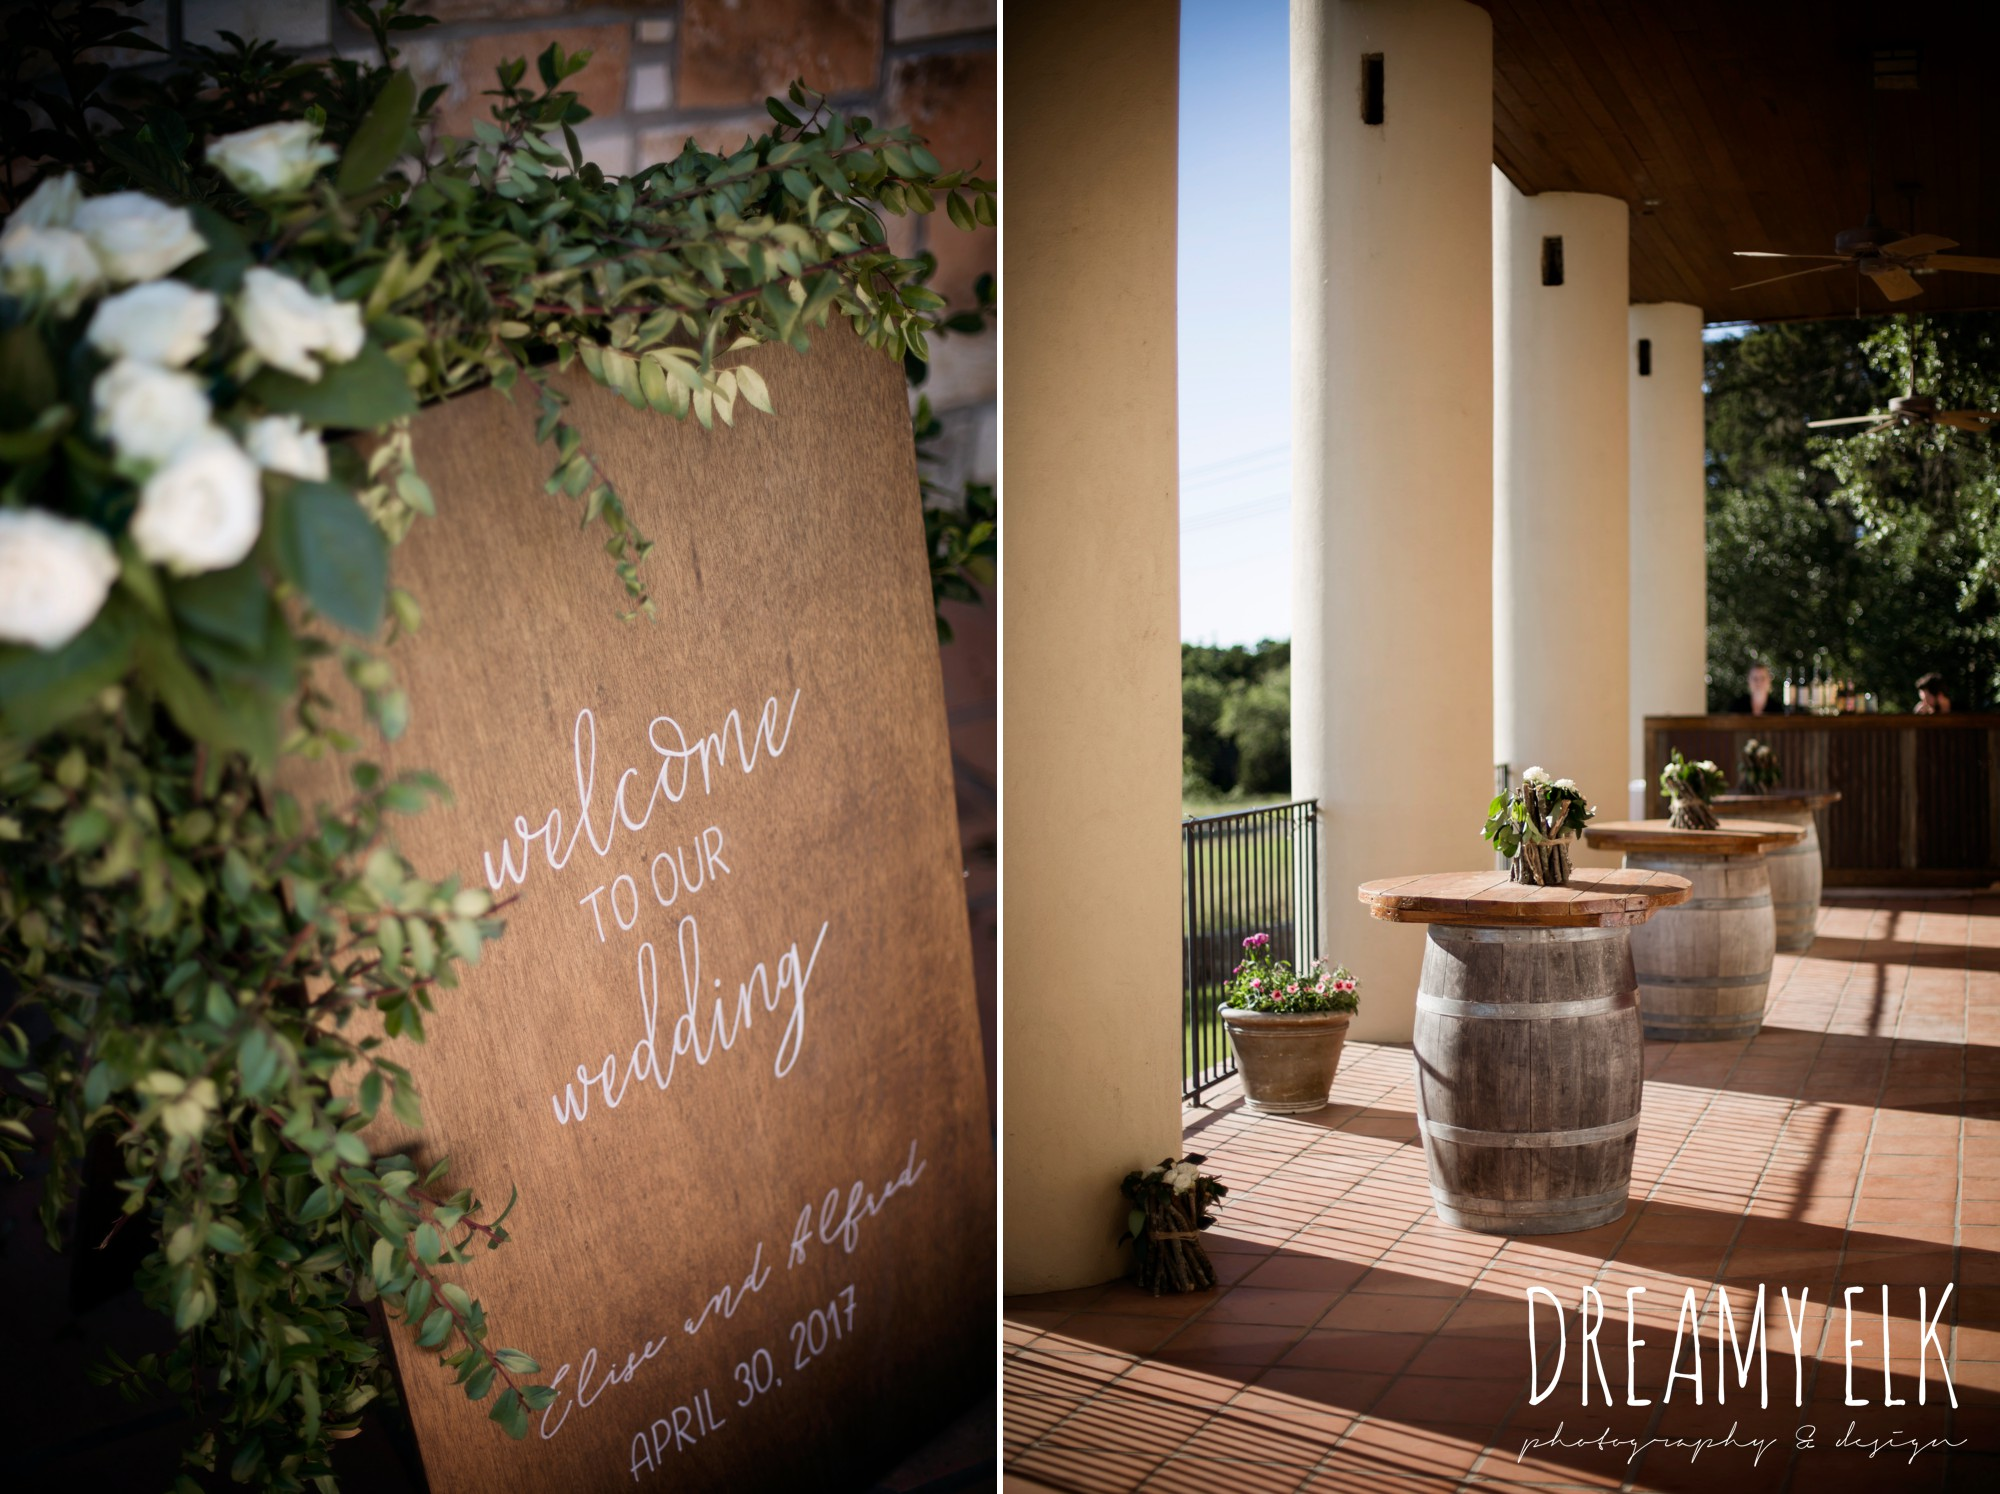 wooden wedding signs, calligraphy, outdoor spring april wedding photo, thurman's mansion, dripping springs, texas {dreamy elk photography and design}